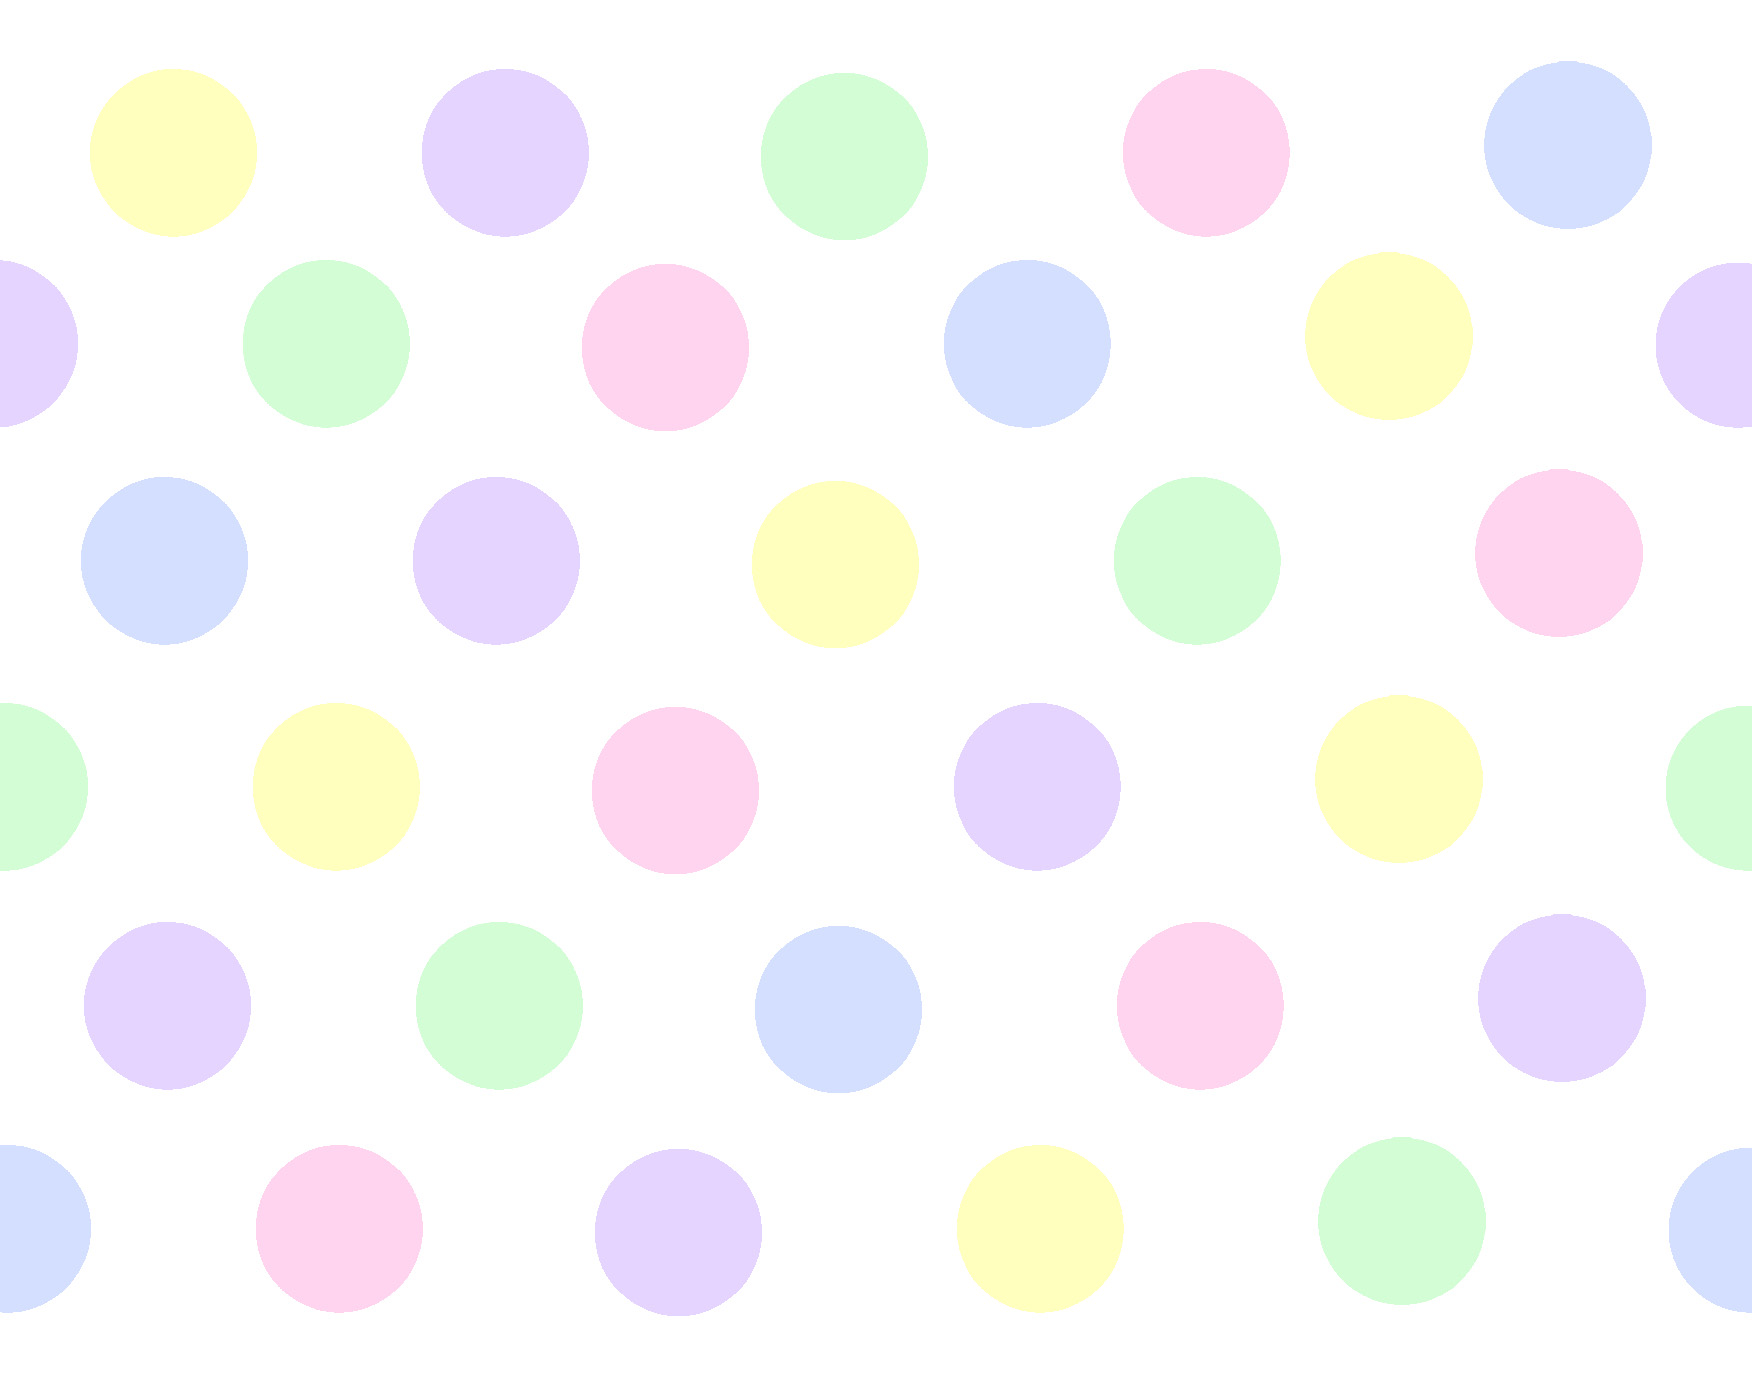 Free Polka Dot Background - ClipArt Best